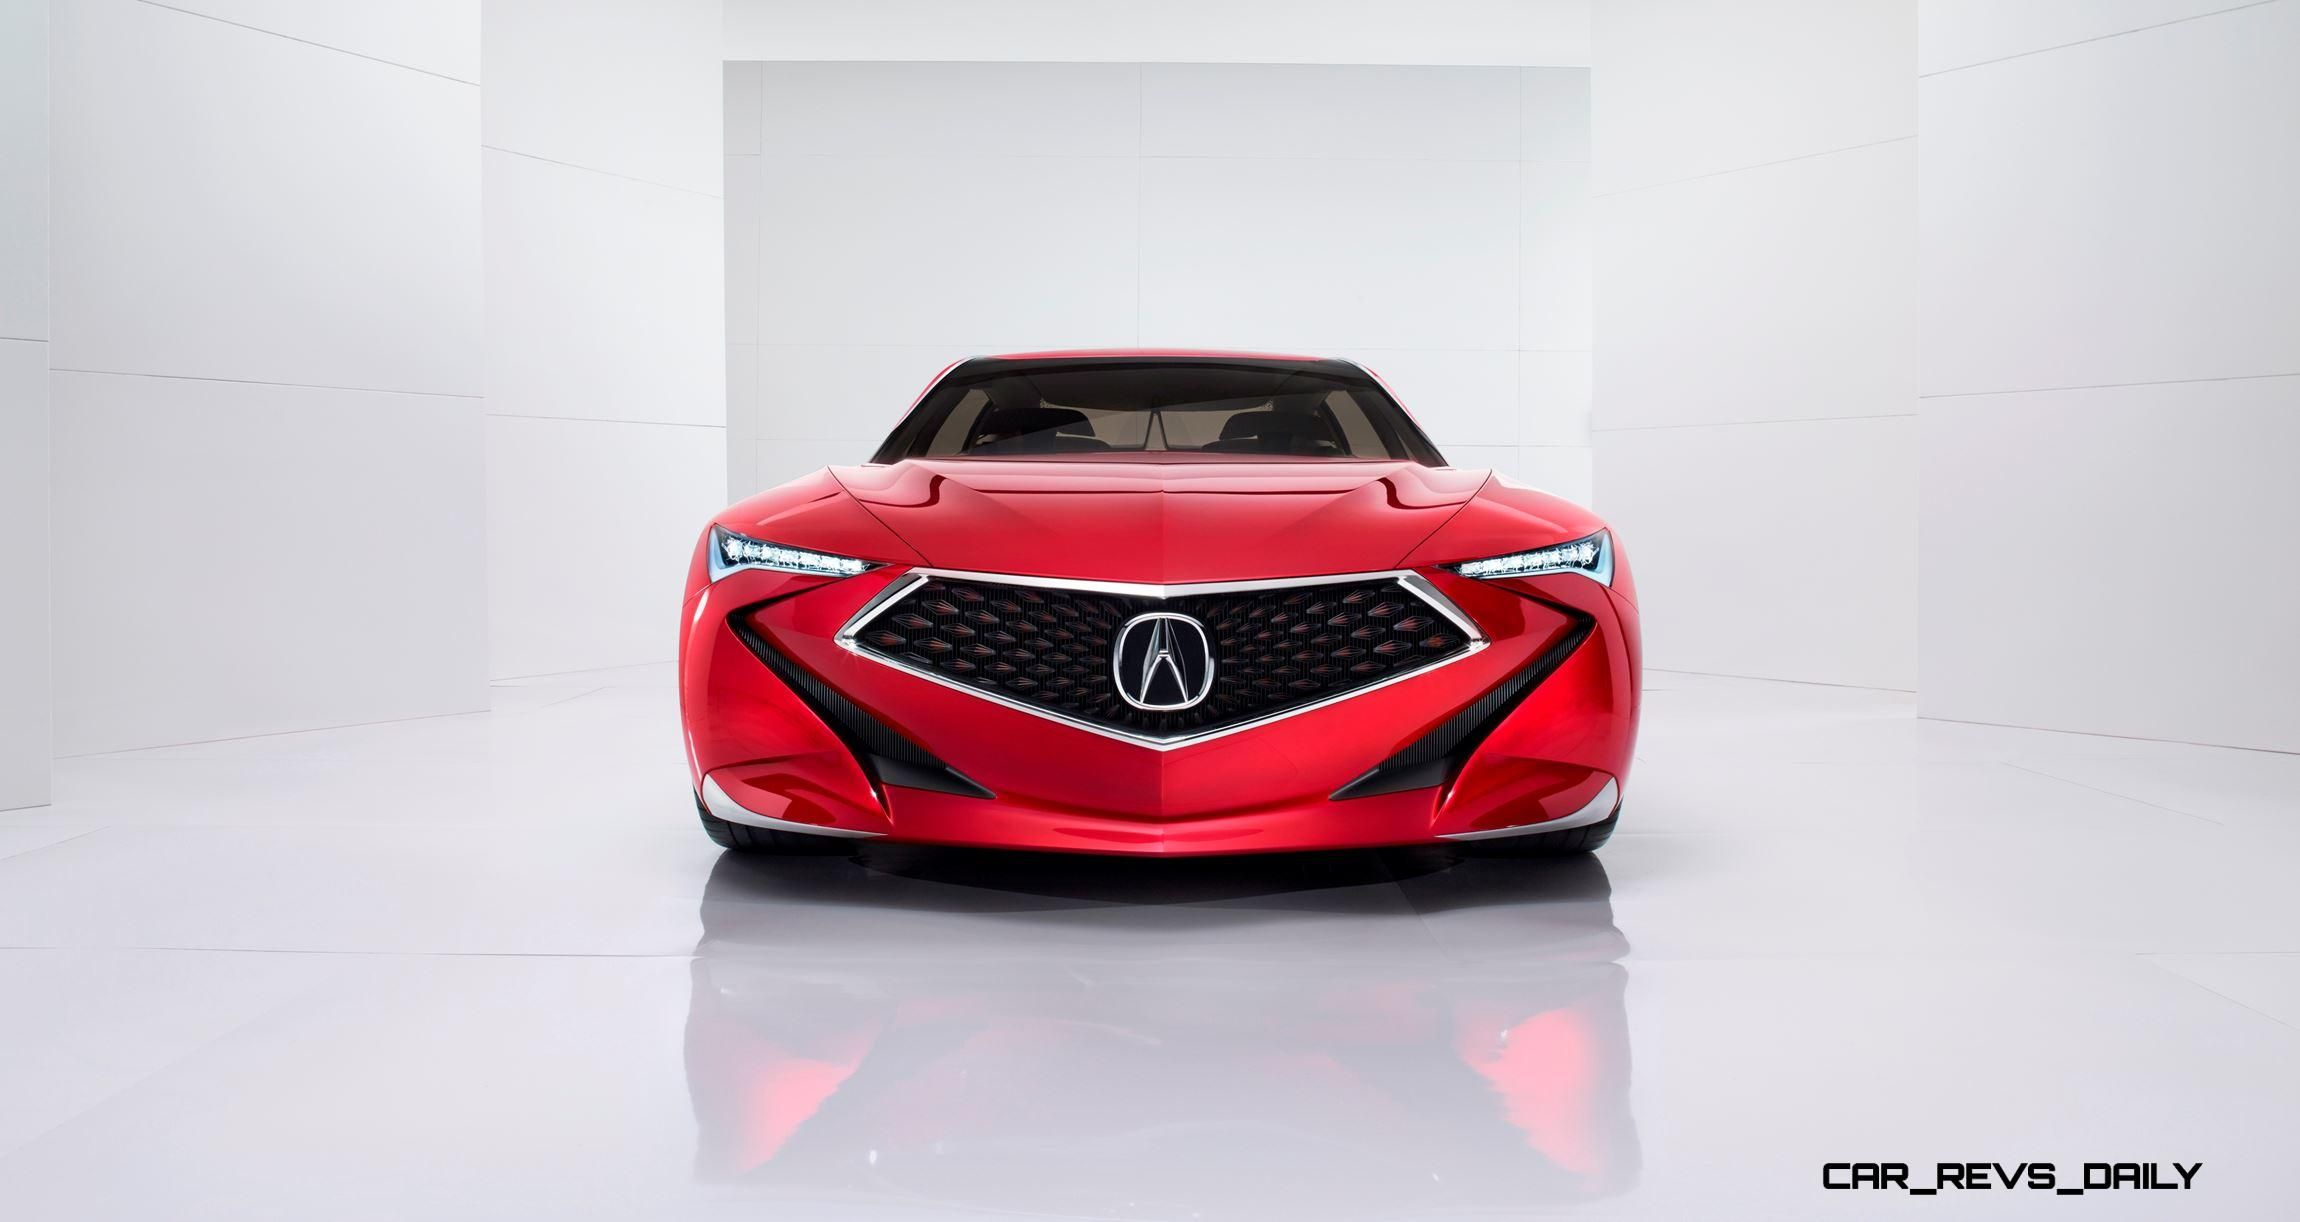 Update1 2016 Acura Precision Concept Design Reboot Ruined By Another Fugly Nose Car Revs Daily Com In 2020 Acura Concept Cars Car